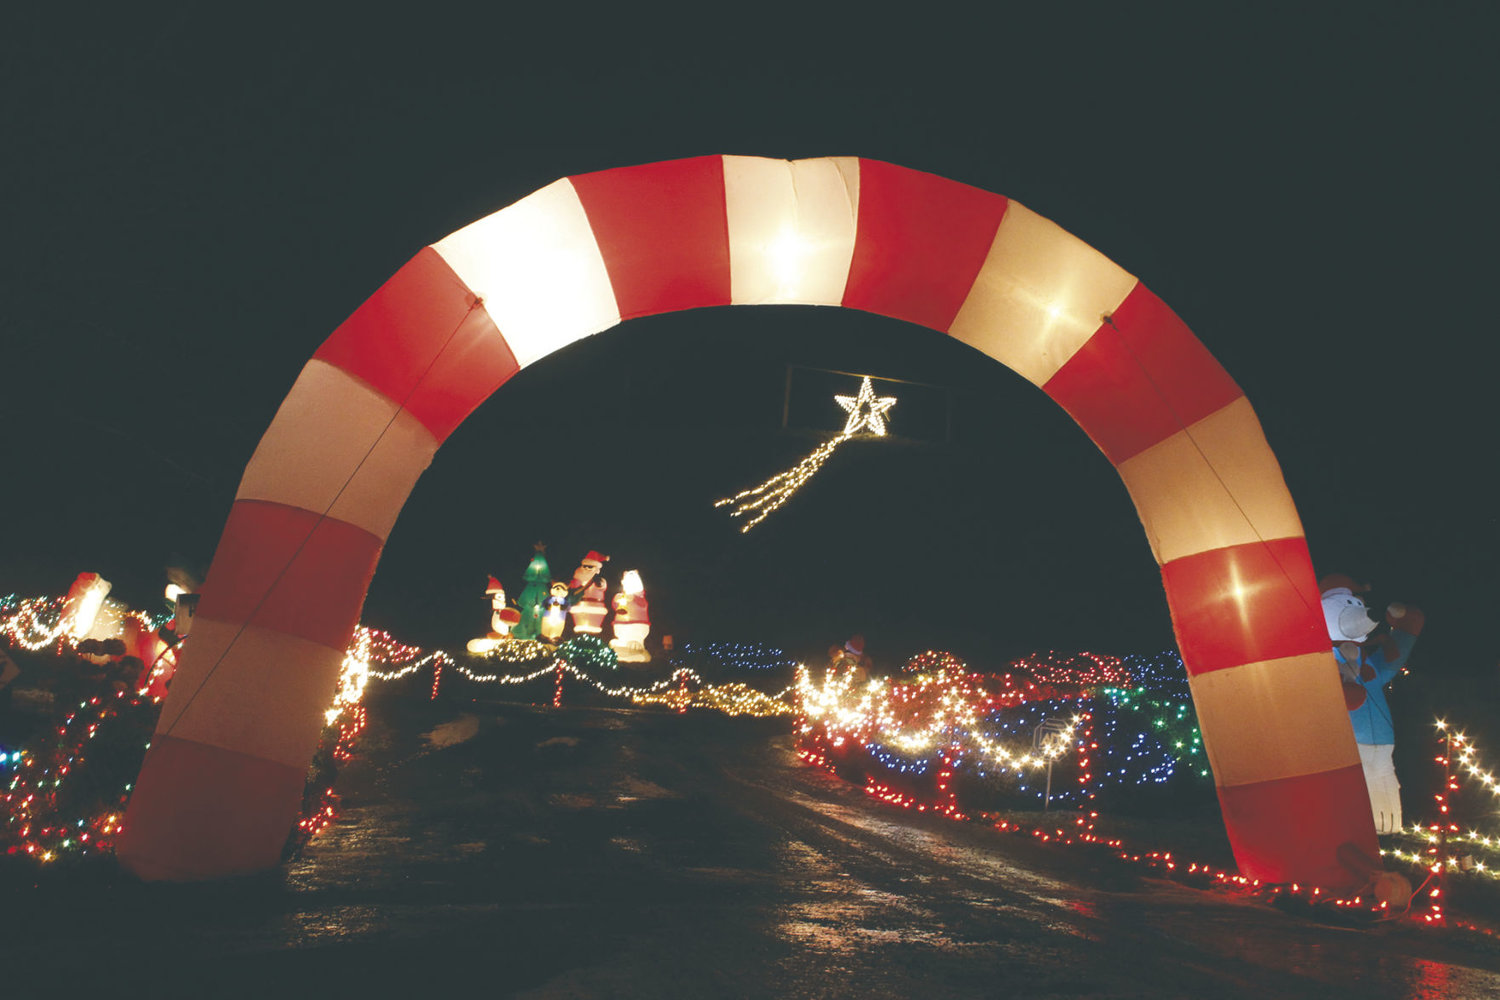 A candy cane arch guides visitors to a circular driveway at the Hoffman family's display on Leland Valley Road West, just off U.S. Highway 101 near Leland Cutoff Road. People may drive by on Leland Valley Road West (there is room to turn around), and/or turn under the candy cane arch to access the circular driveway. It's OK to get out and walk around; just be aware the inflatables are secured with numerous tie-downs. Photo by Patrick Sullivan